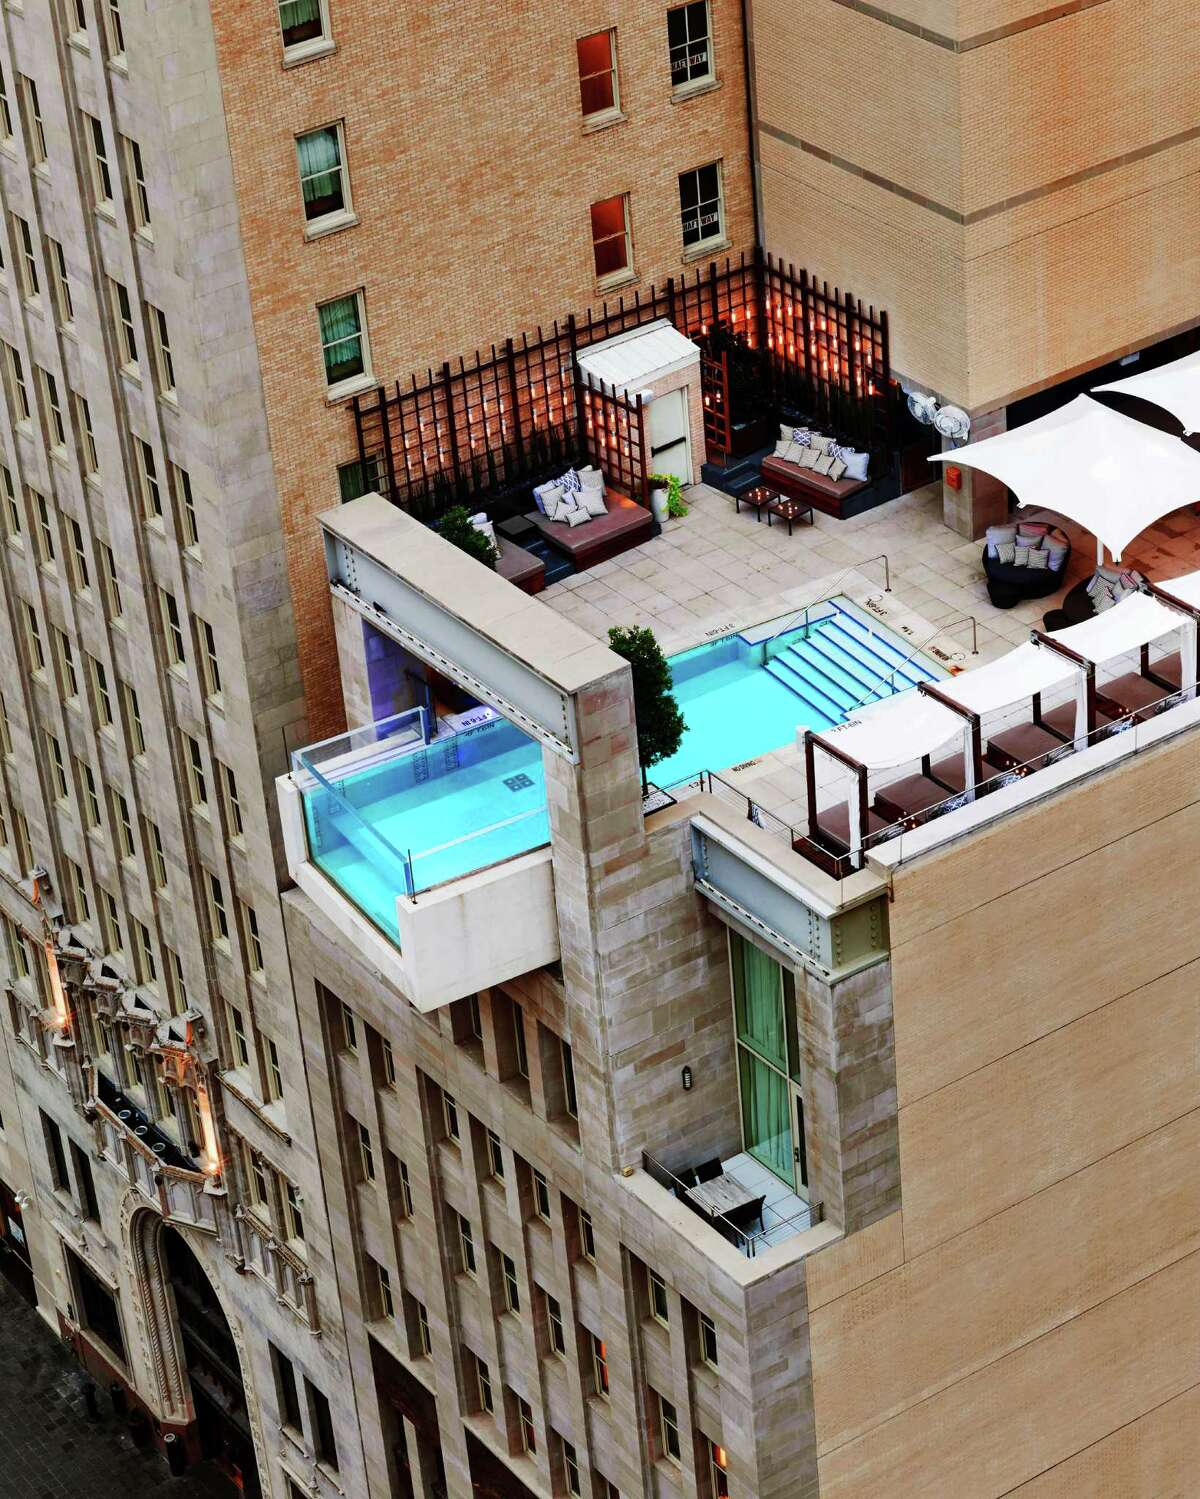 The Joule's rooftop pool extends past the building's edge, giving swimmers the sensation of swimming out into the air.